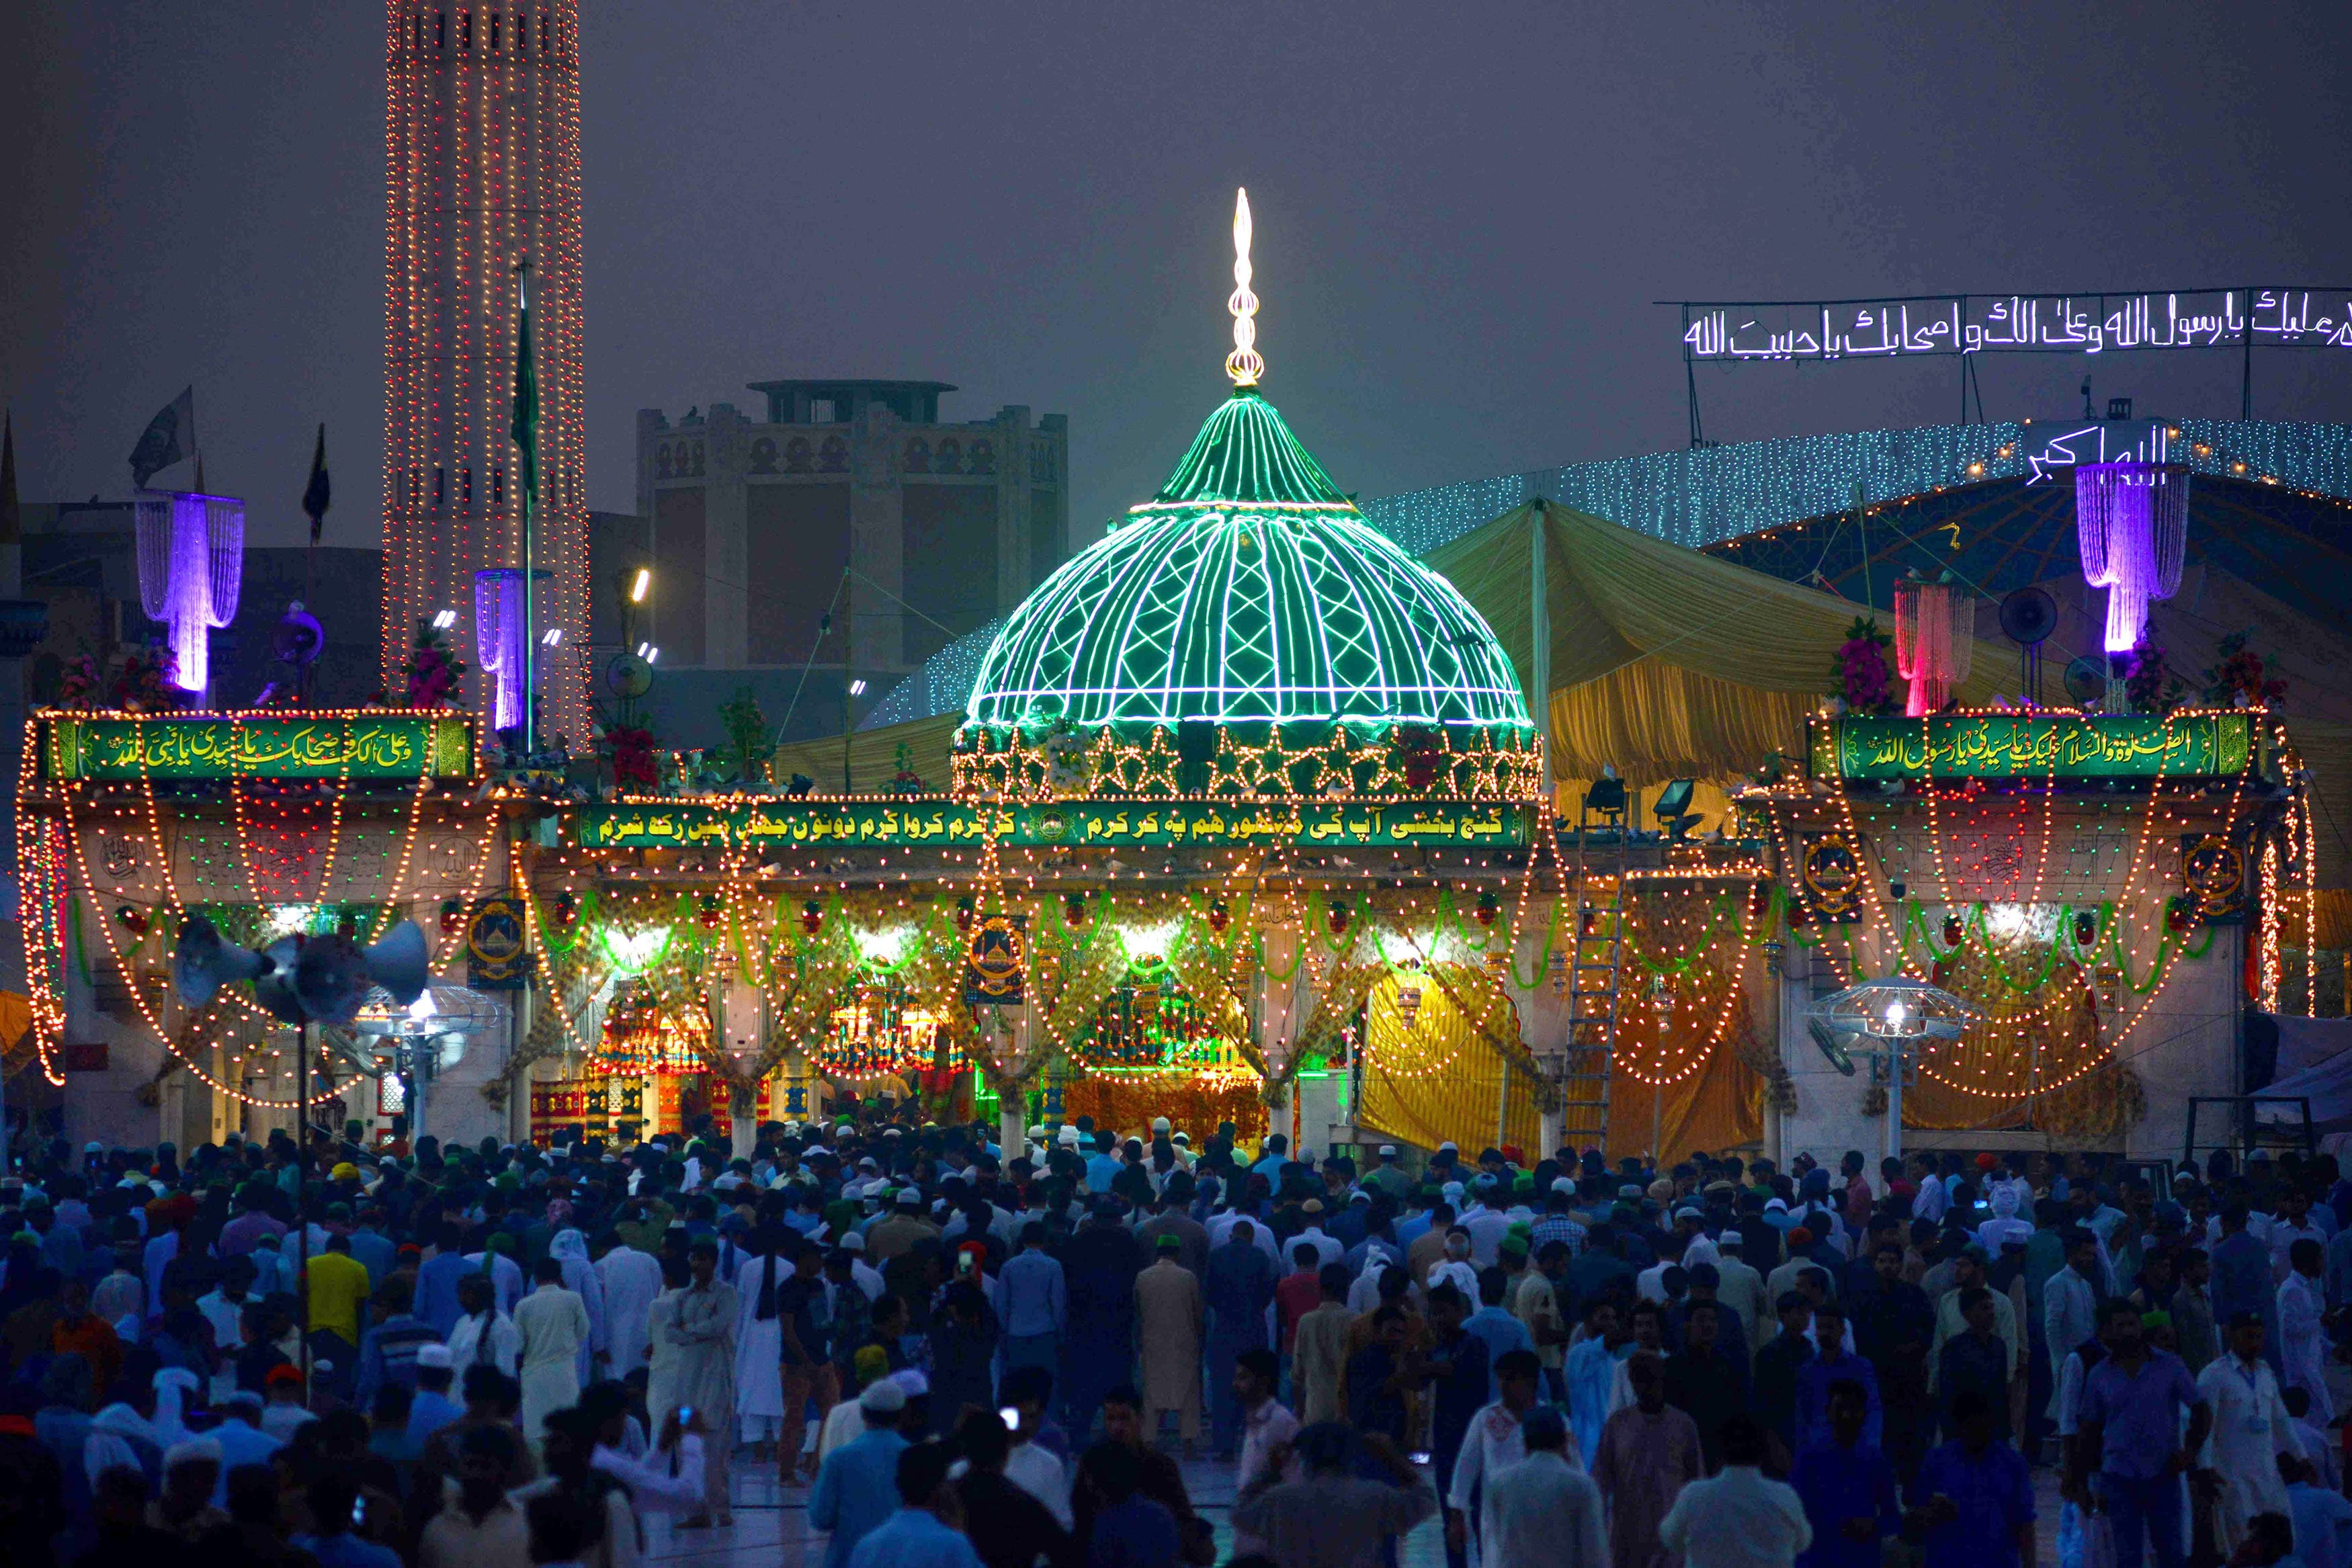 Pakistani Sufi followers gather at the Data Darbar complex during the three-day annual 'Urs' religious festival in Lahore on October 28, 2018. - The Data Darbar complex contains the shrine of Saint Syed Ali bin Osman Al-Hajvery, popularly known as Data Ganj Bakhsh. (Photo by ARIF ALI / AFP) — AFP or licensors